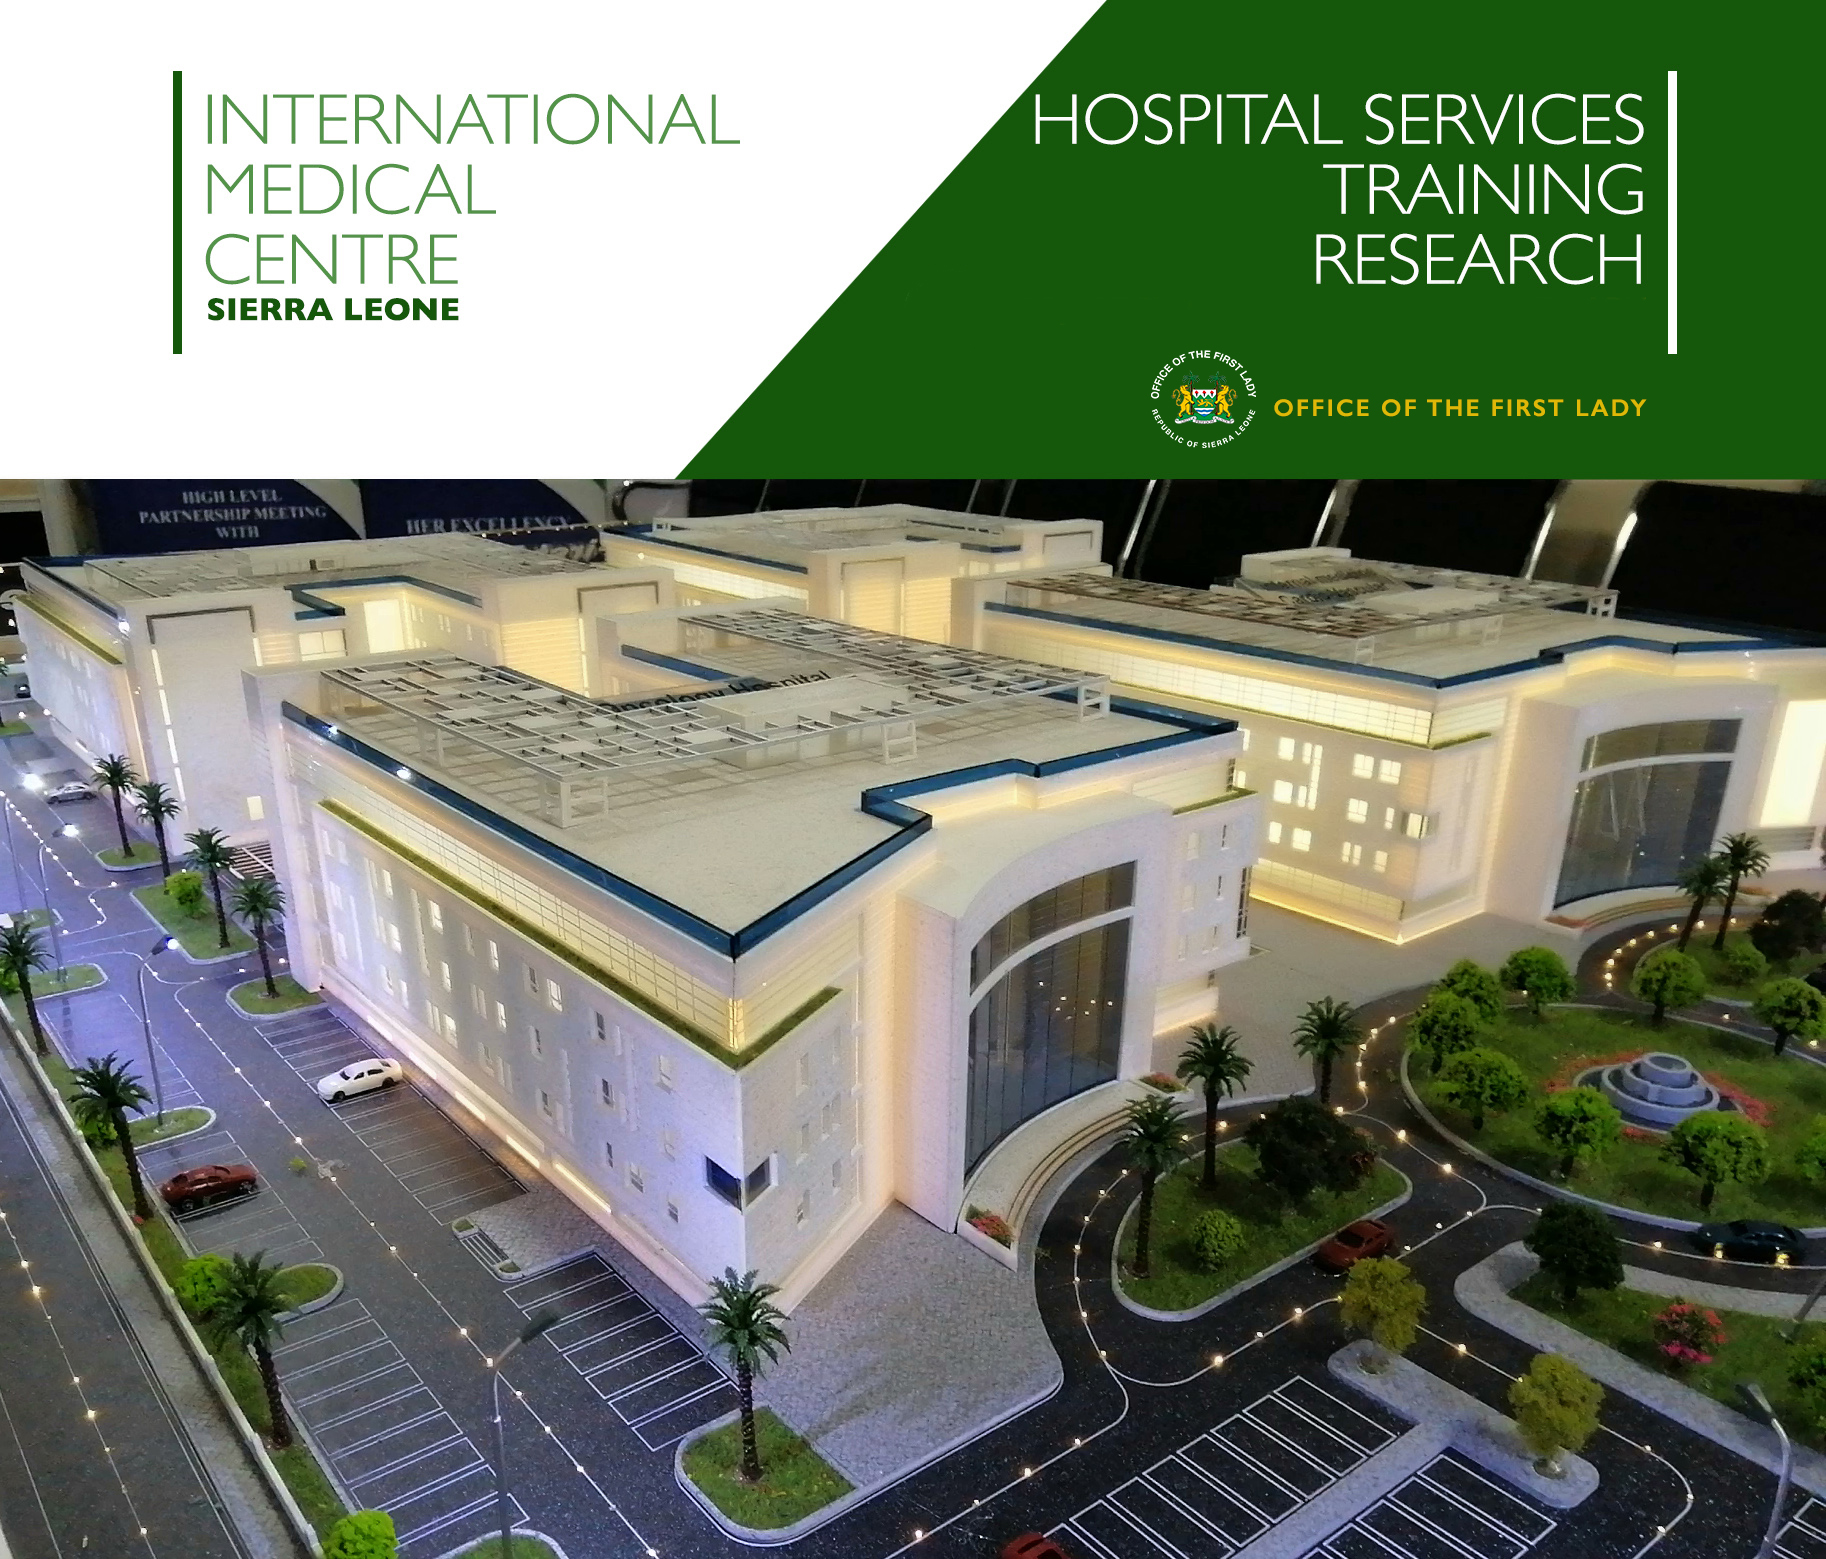 First Lady unveil International Medical Centre